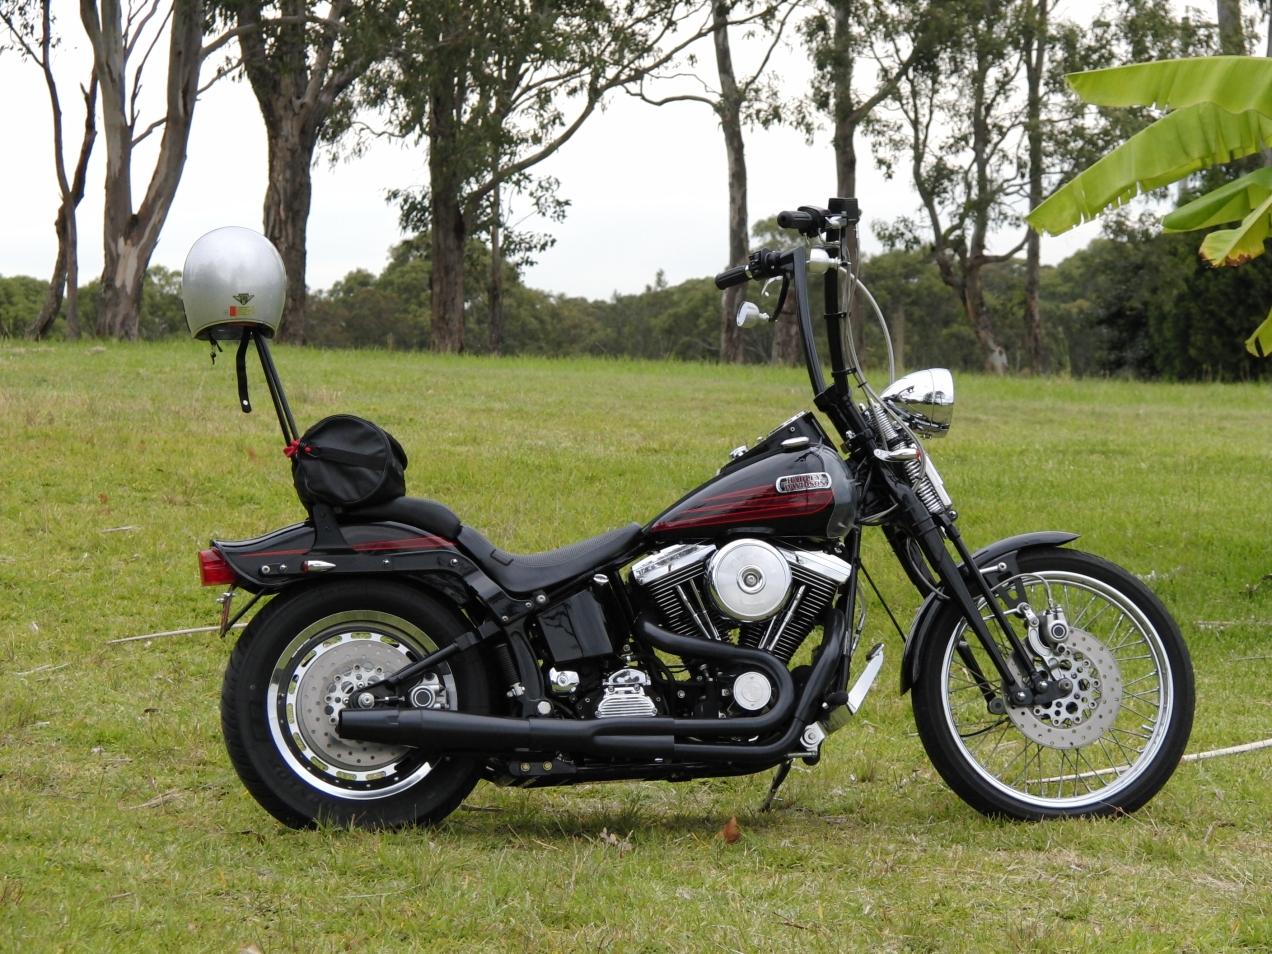 harley-davidson-softail-springer-1995-bad-boy-FXSTSB-evolution-1340-thunderheader-carlini-evil-apehangers-cycle-vision-tall-sissybar-joker-machine-mirrors-psalmistice_CIMG2177